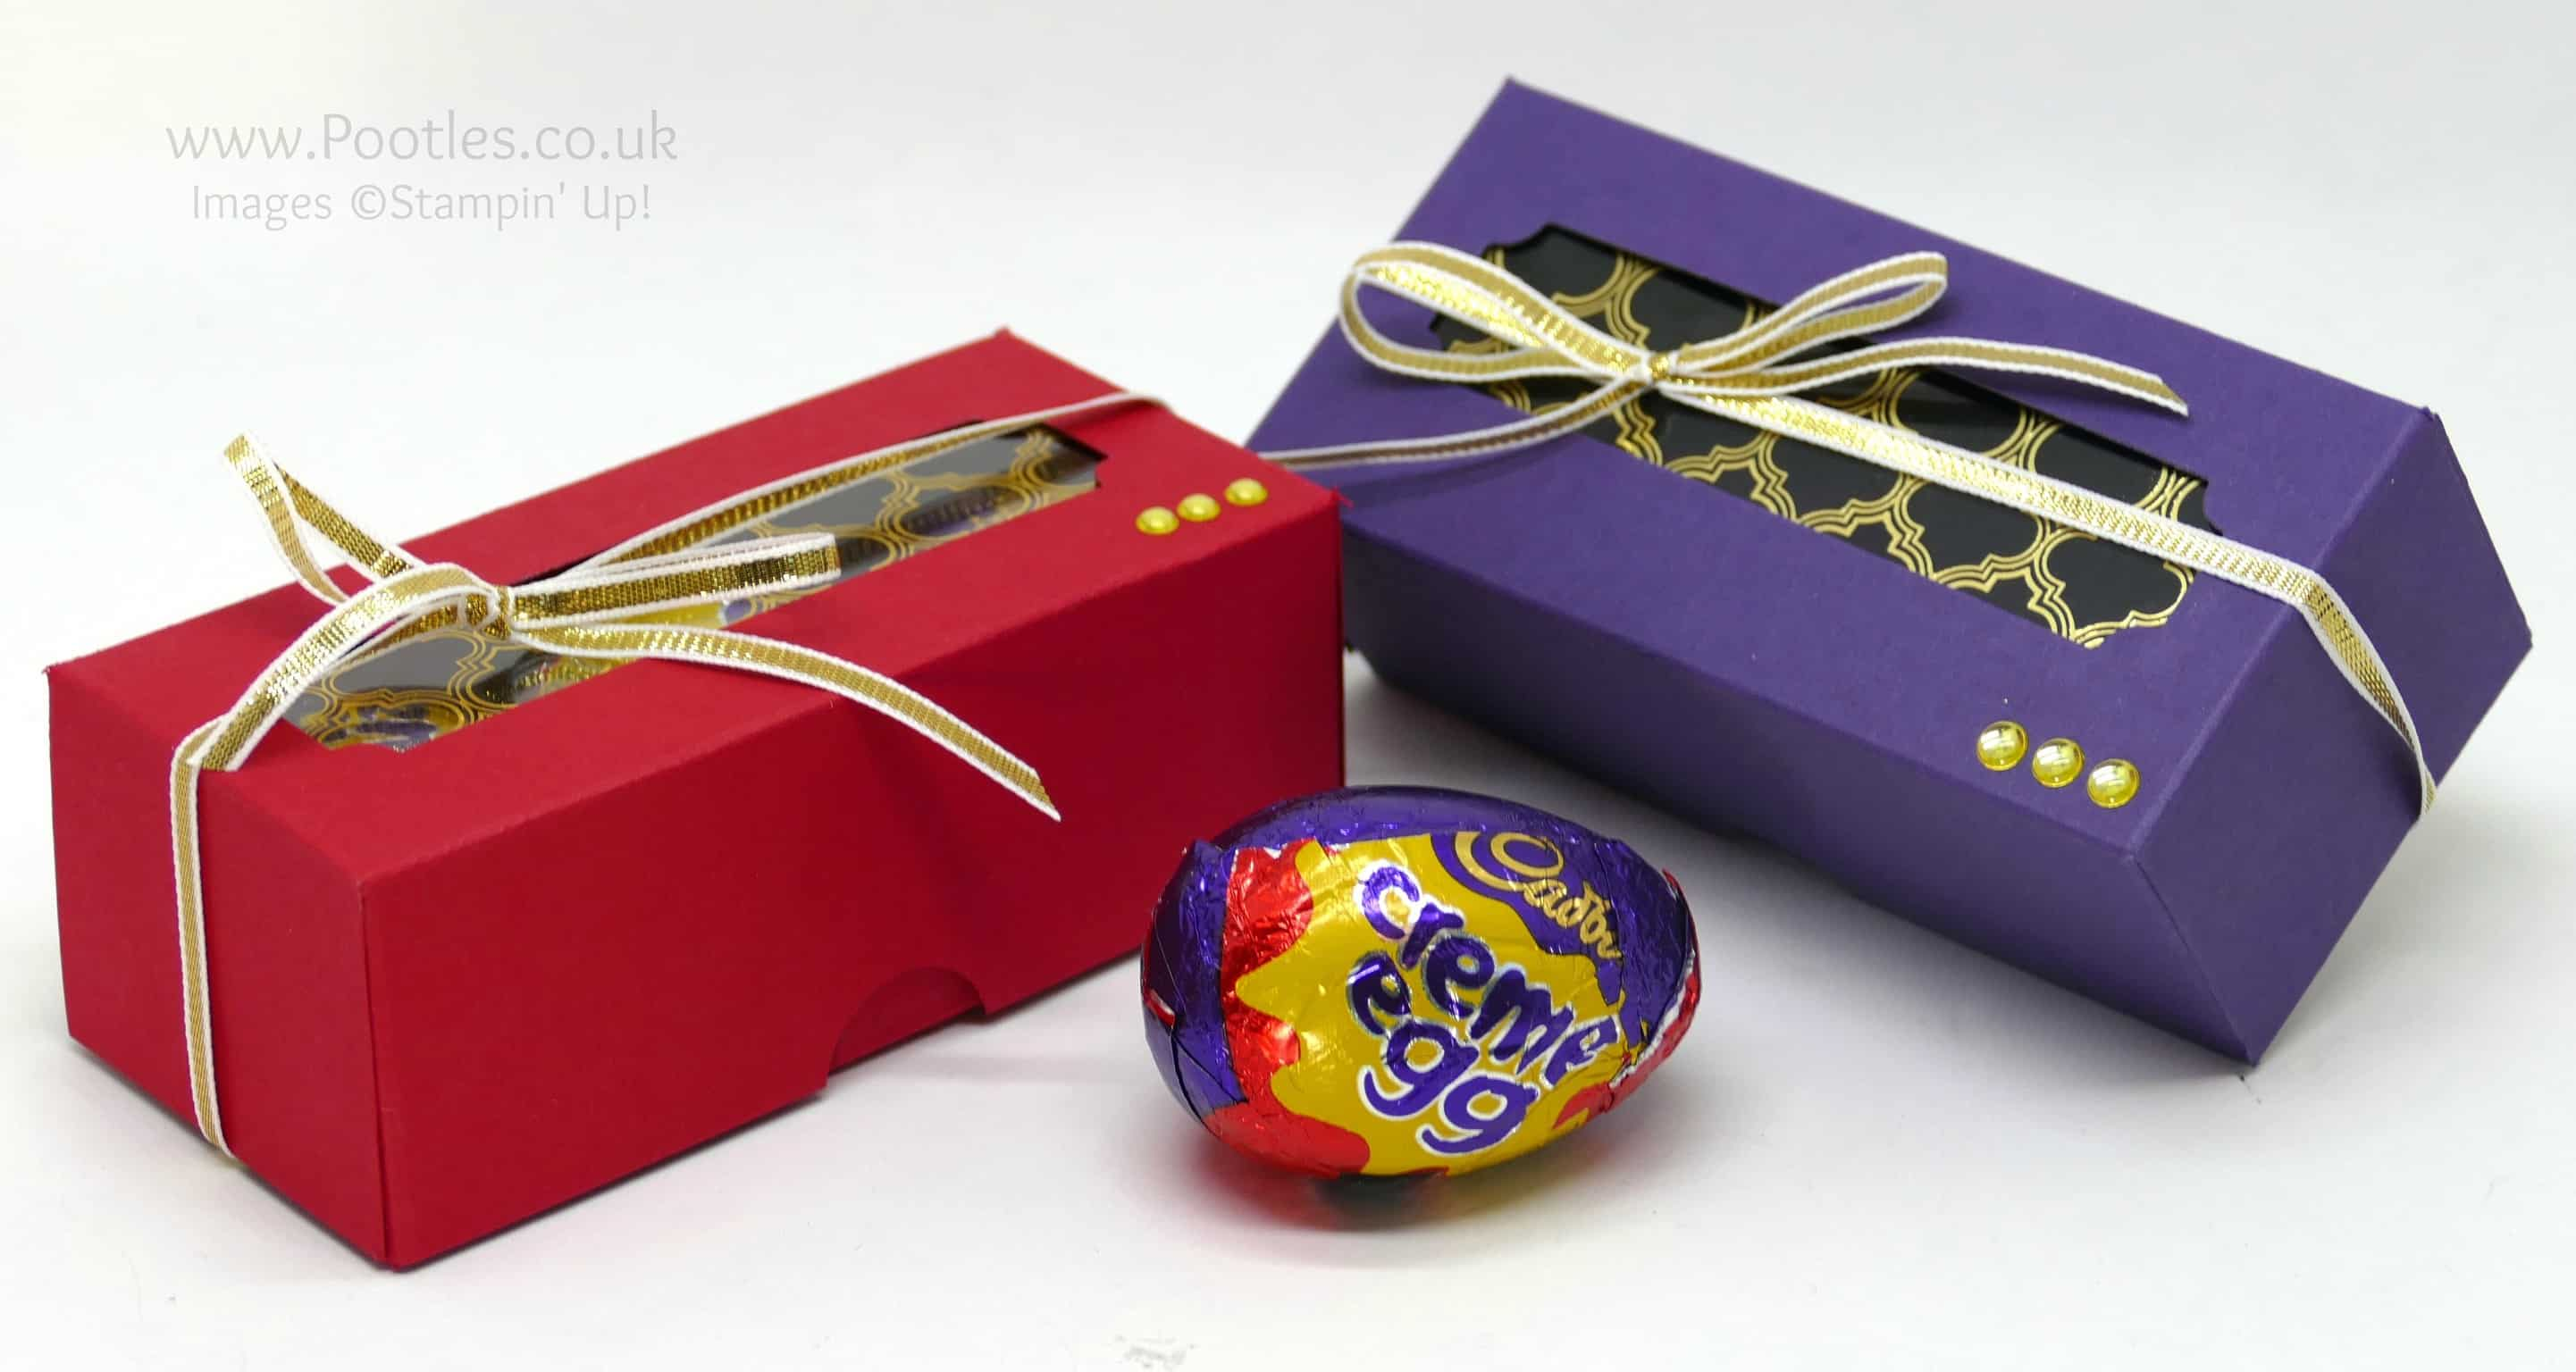 Regal Triple Creme Egg Box using Stampin' Up! Foil Window Sheets